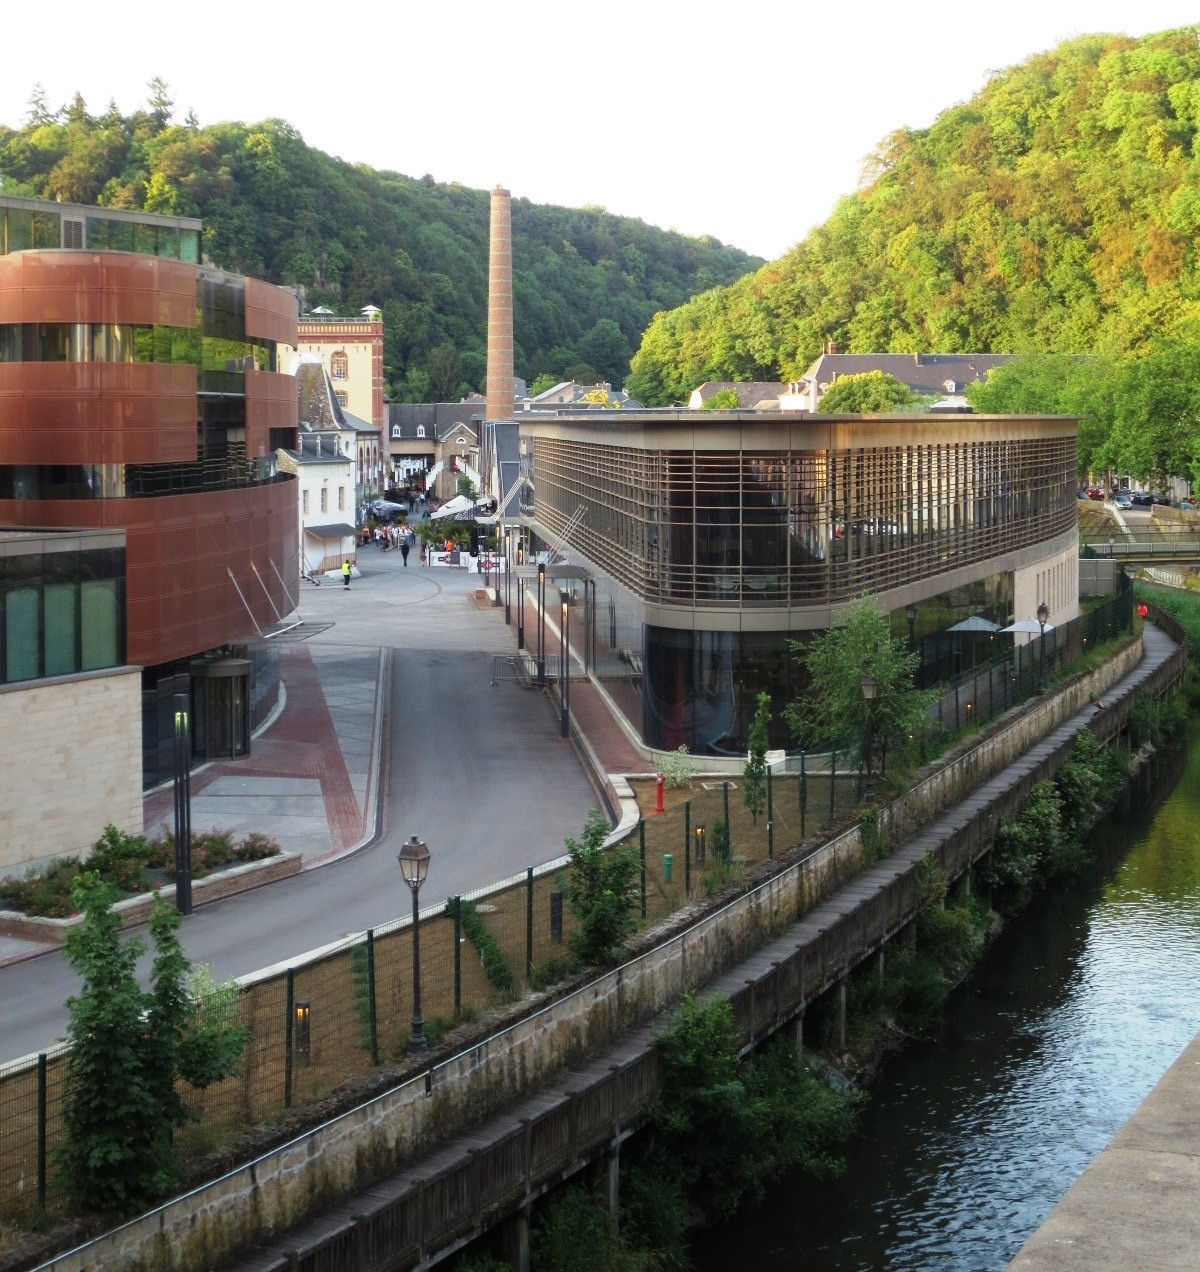 les Rives de Clausen i Luxemburg